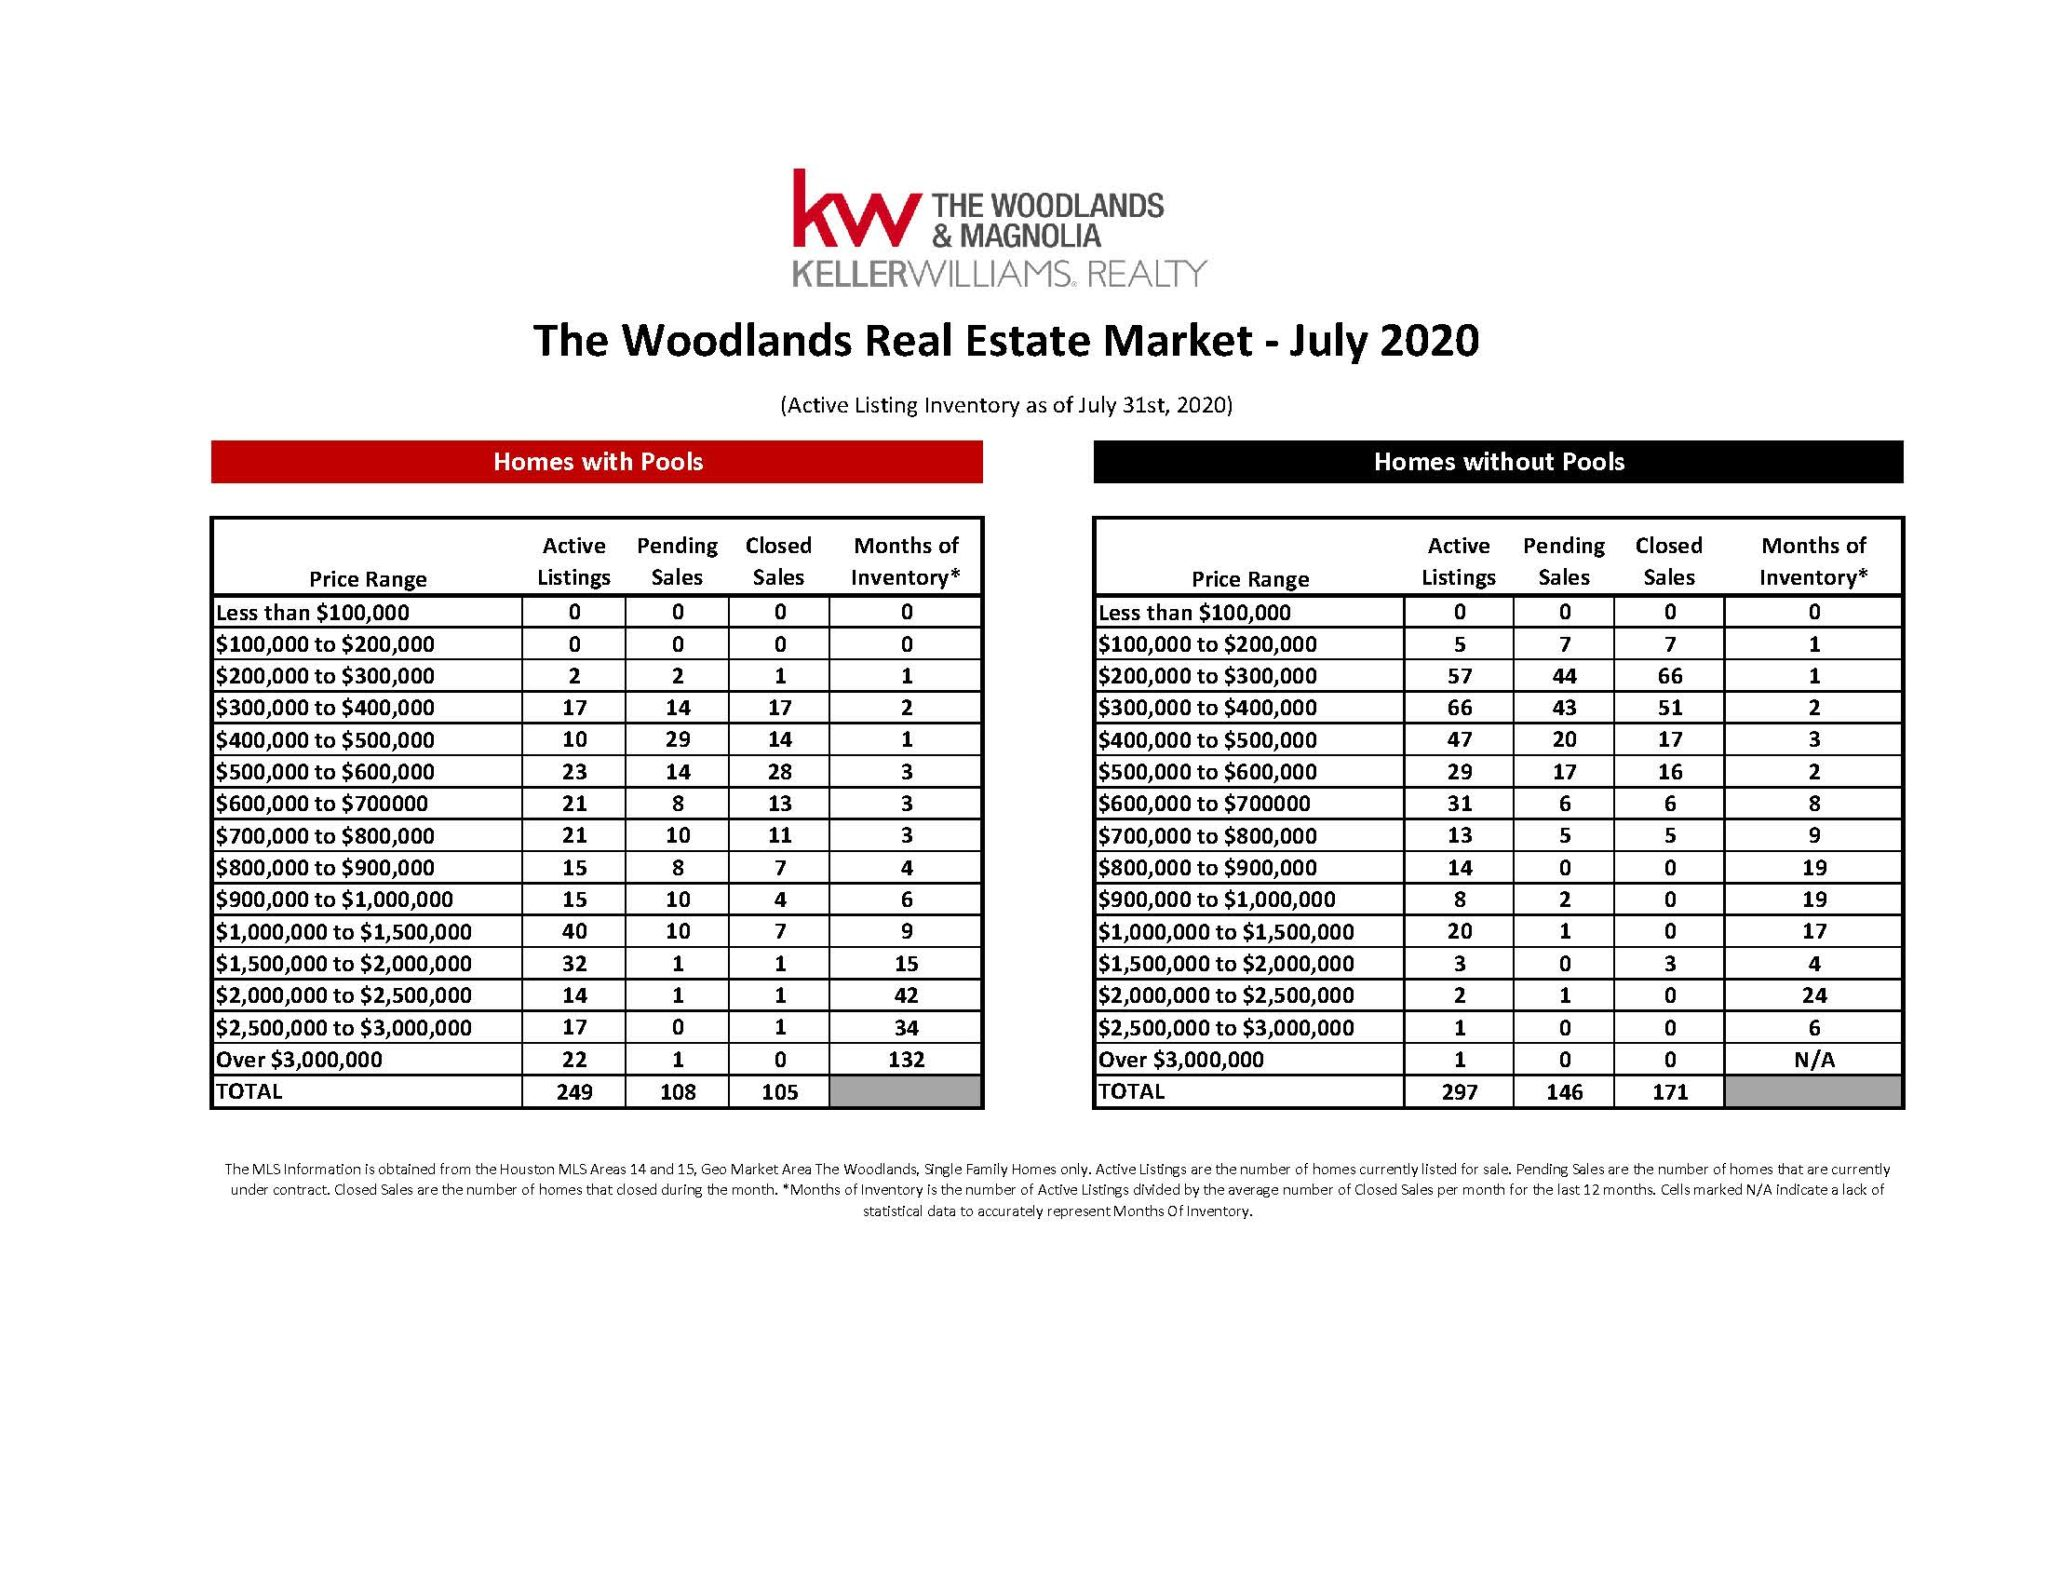 , July 2020 MarketWatch Report – The Woodlands, KW Woodlands